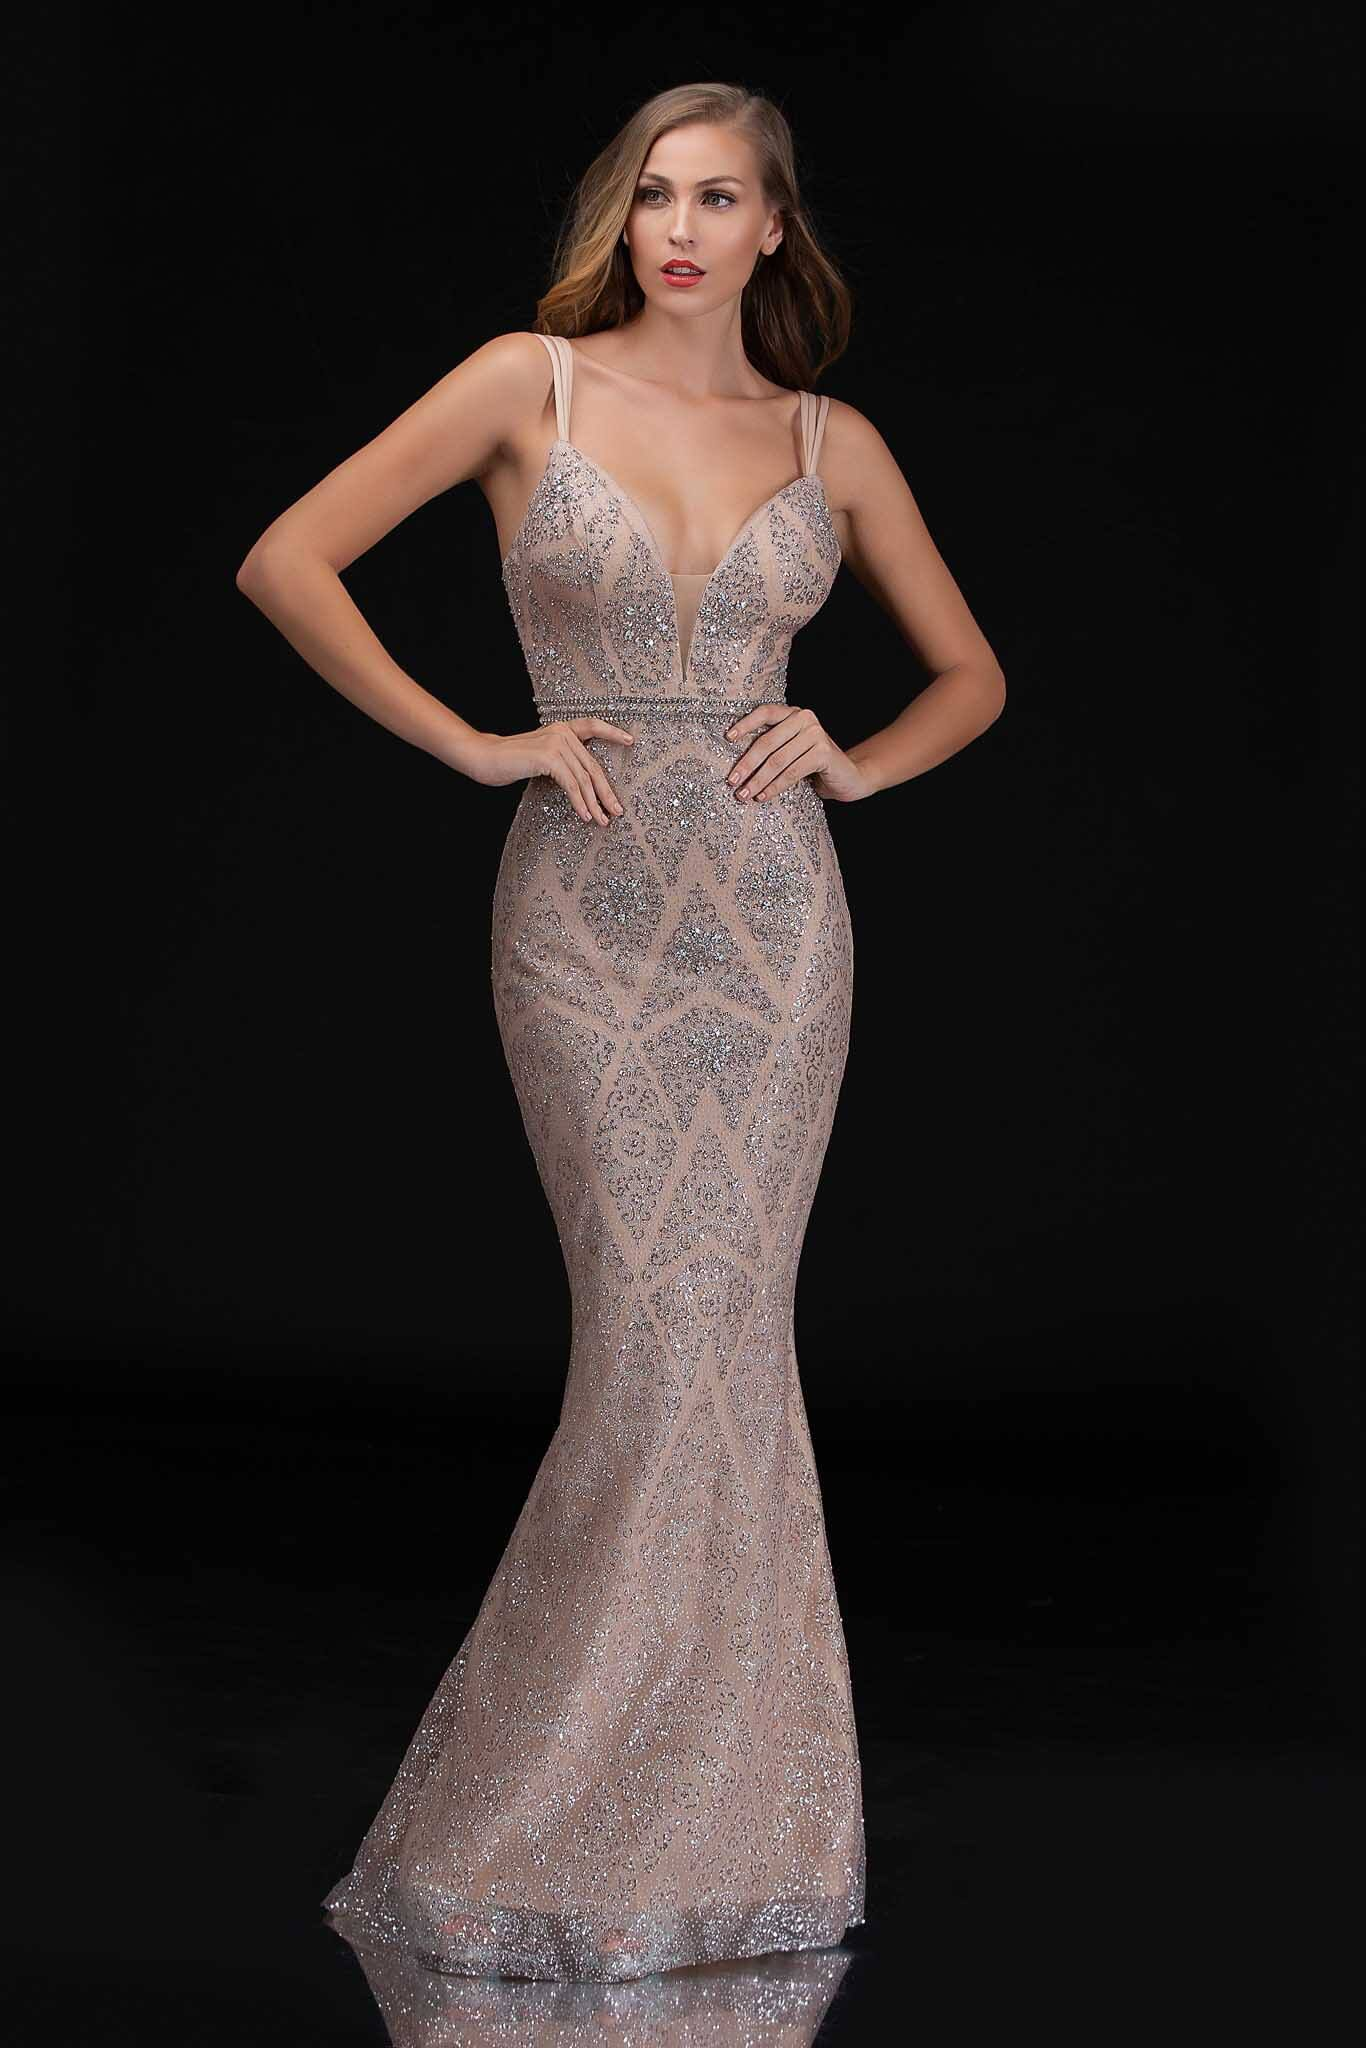 Style 8181 Nina Canacci Gold Size 6 Pattern Prom Mermaid Dress on Queenly